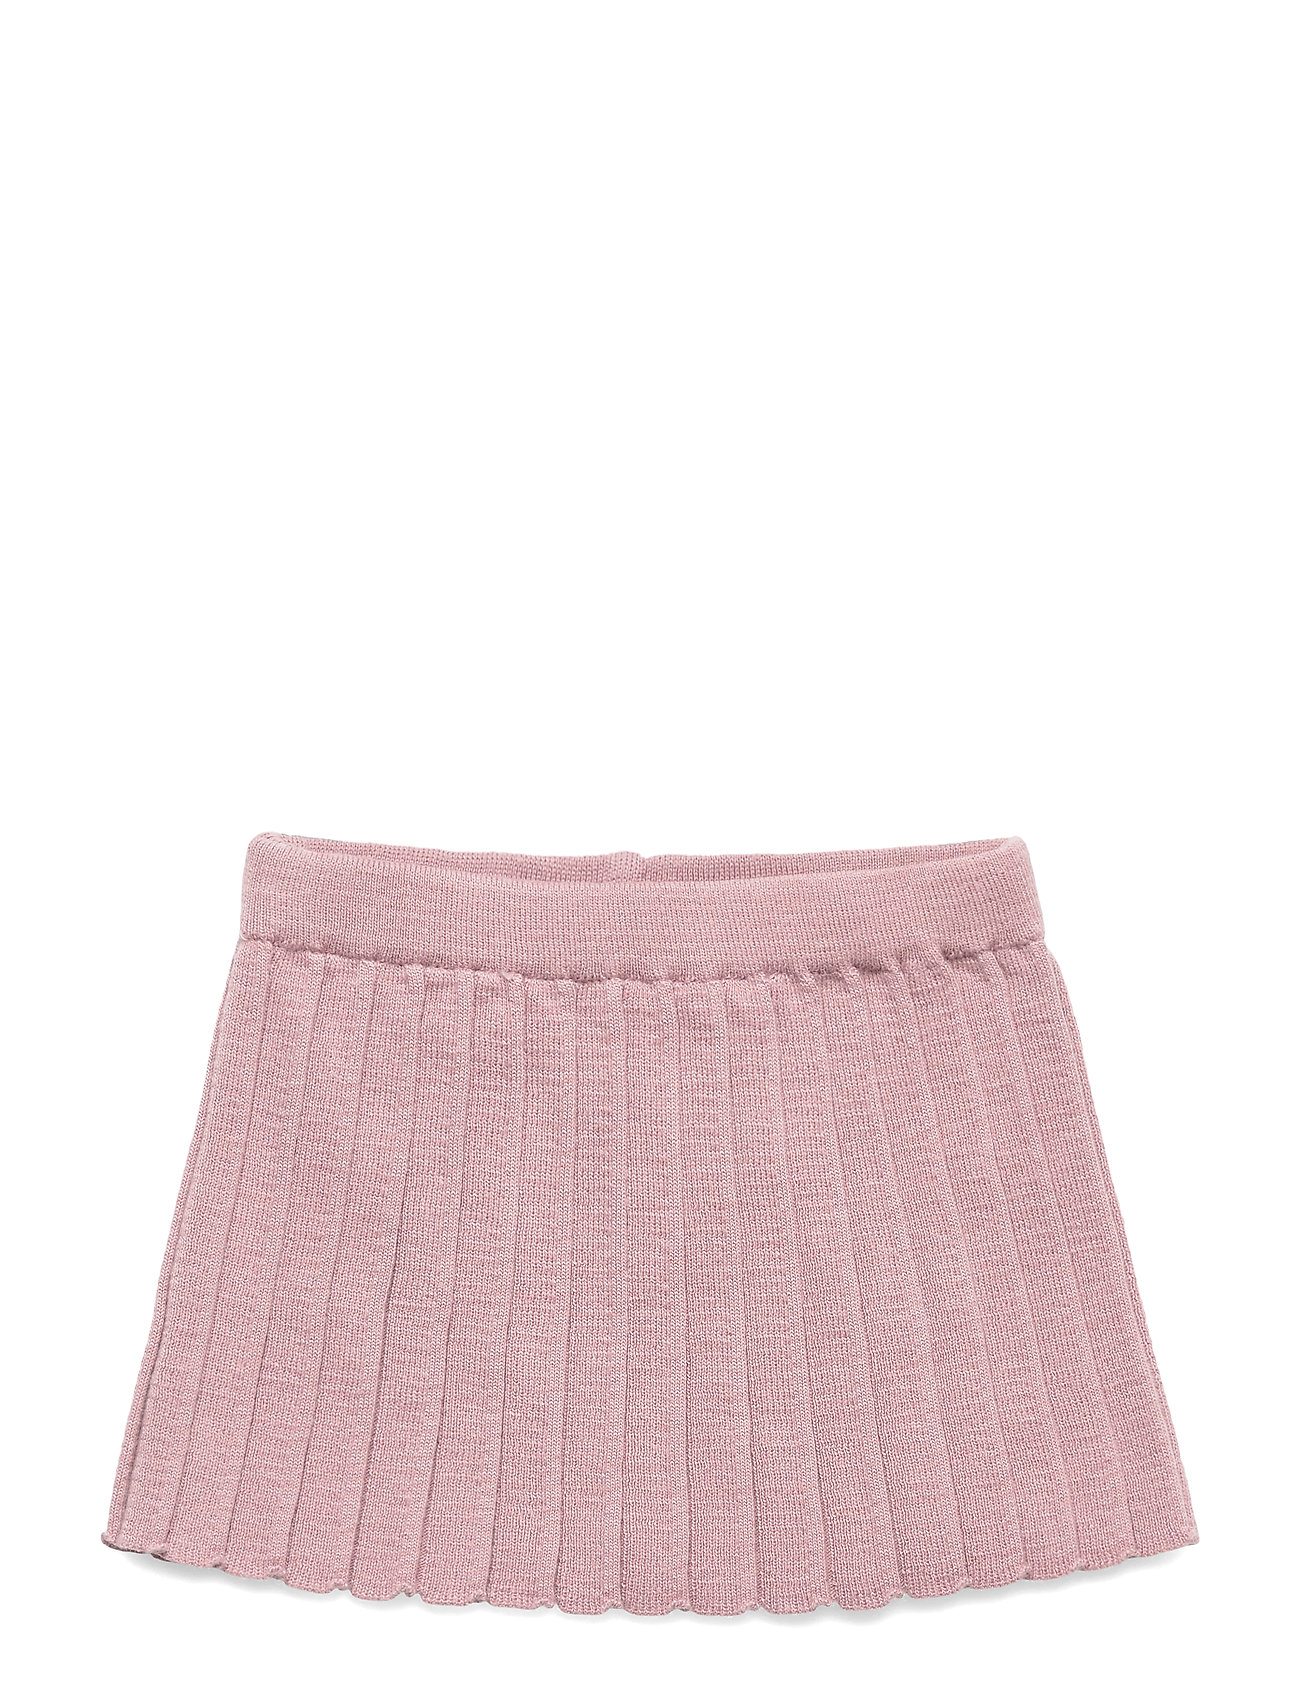 mp Denmark PLISSÉ SKIRT - WOOD ROSE